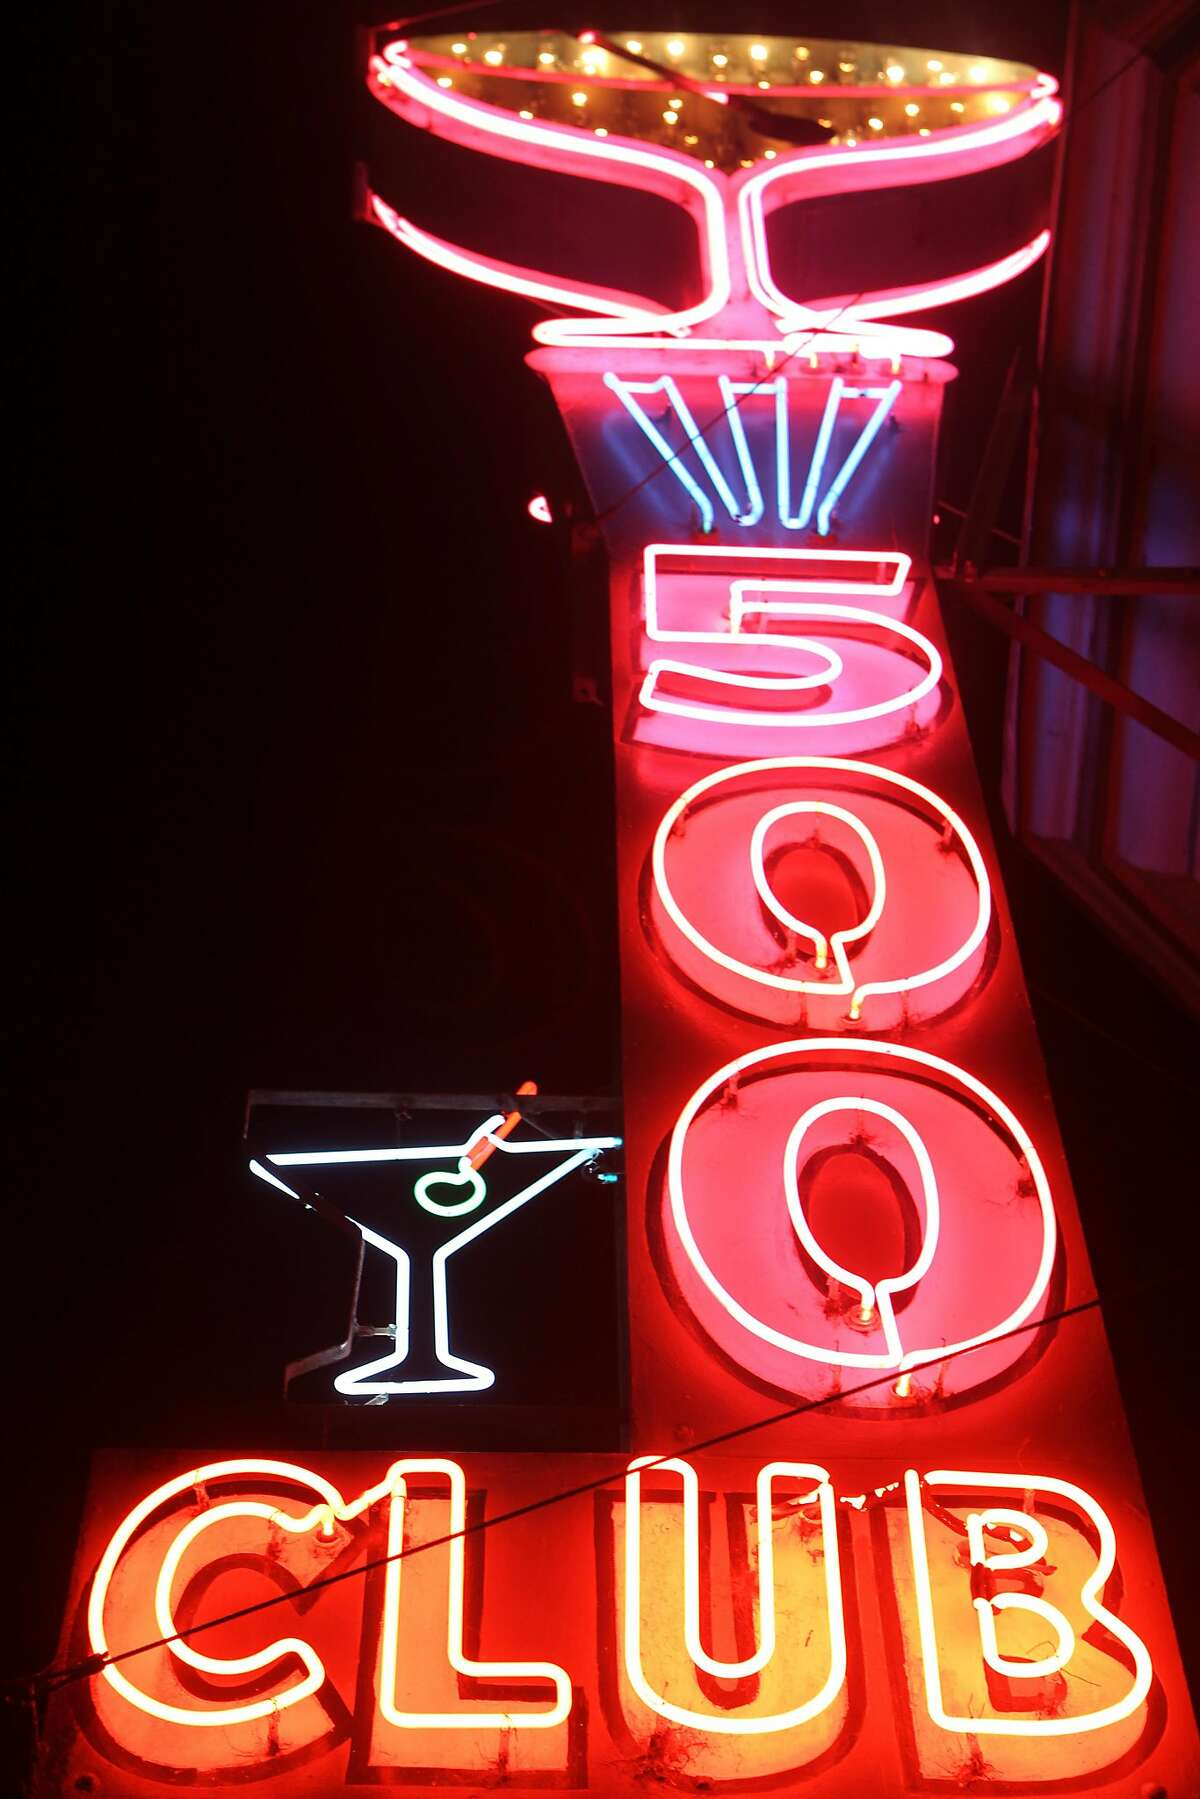 The big martini glass and the tall 500 Club sign attracts people passing by in the mission in San Francisco, Calif., on Thursday December 4, 2014.